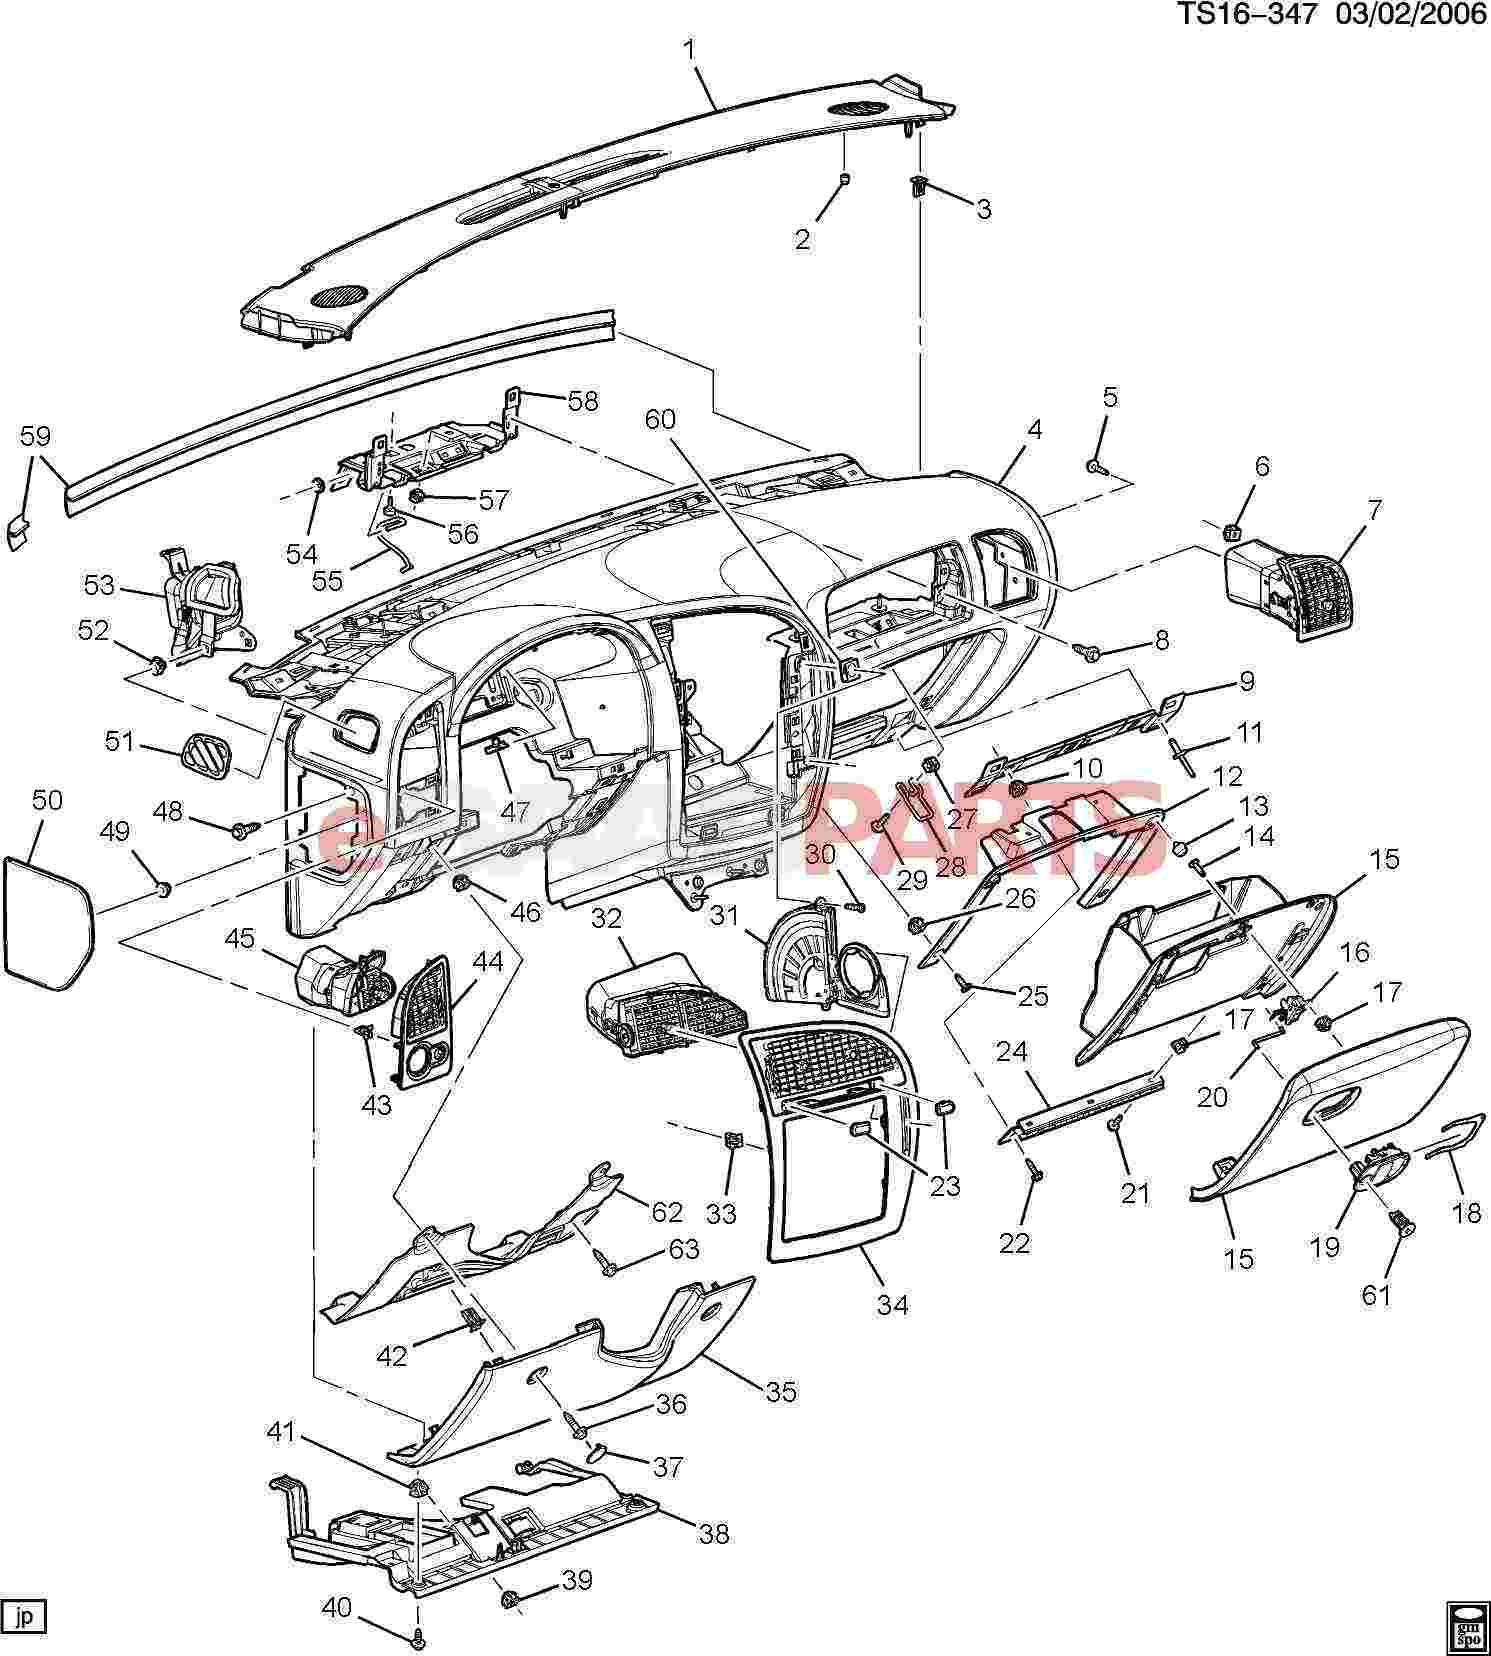 Volkswagen Jetta 2 3 2004 Specs And Images in addition Saab Vacuum Diagram in addition 1985 Nissan Pulsar Wiring Diagram as well Showthread furthermore Saab Vacuum Line Diagram. on saab 9 3 heater diagram